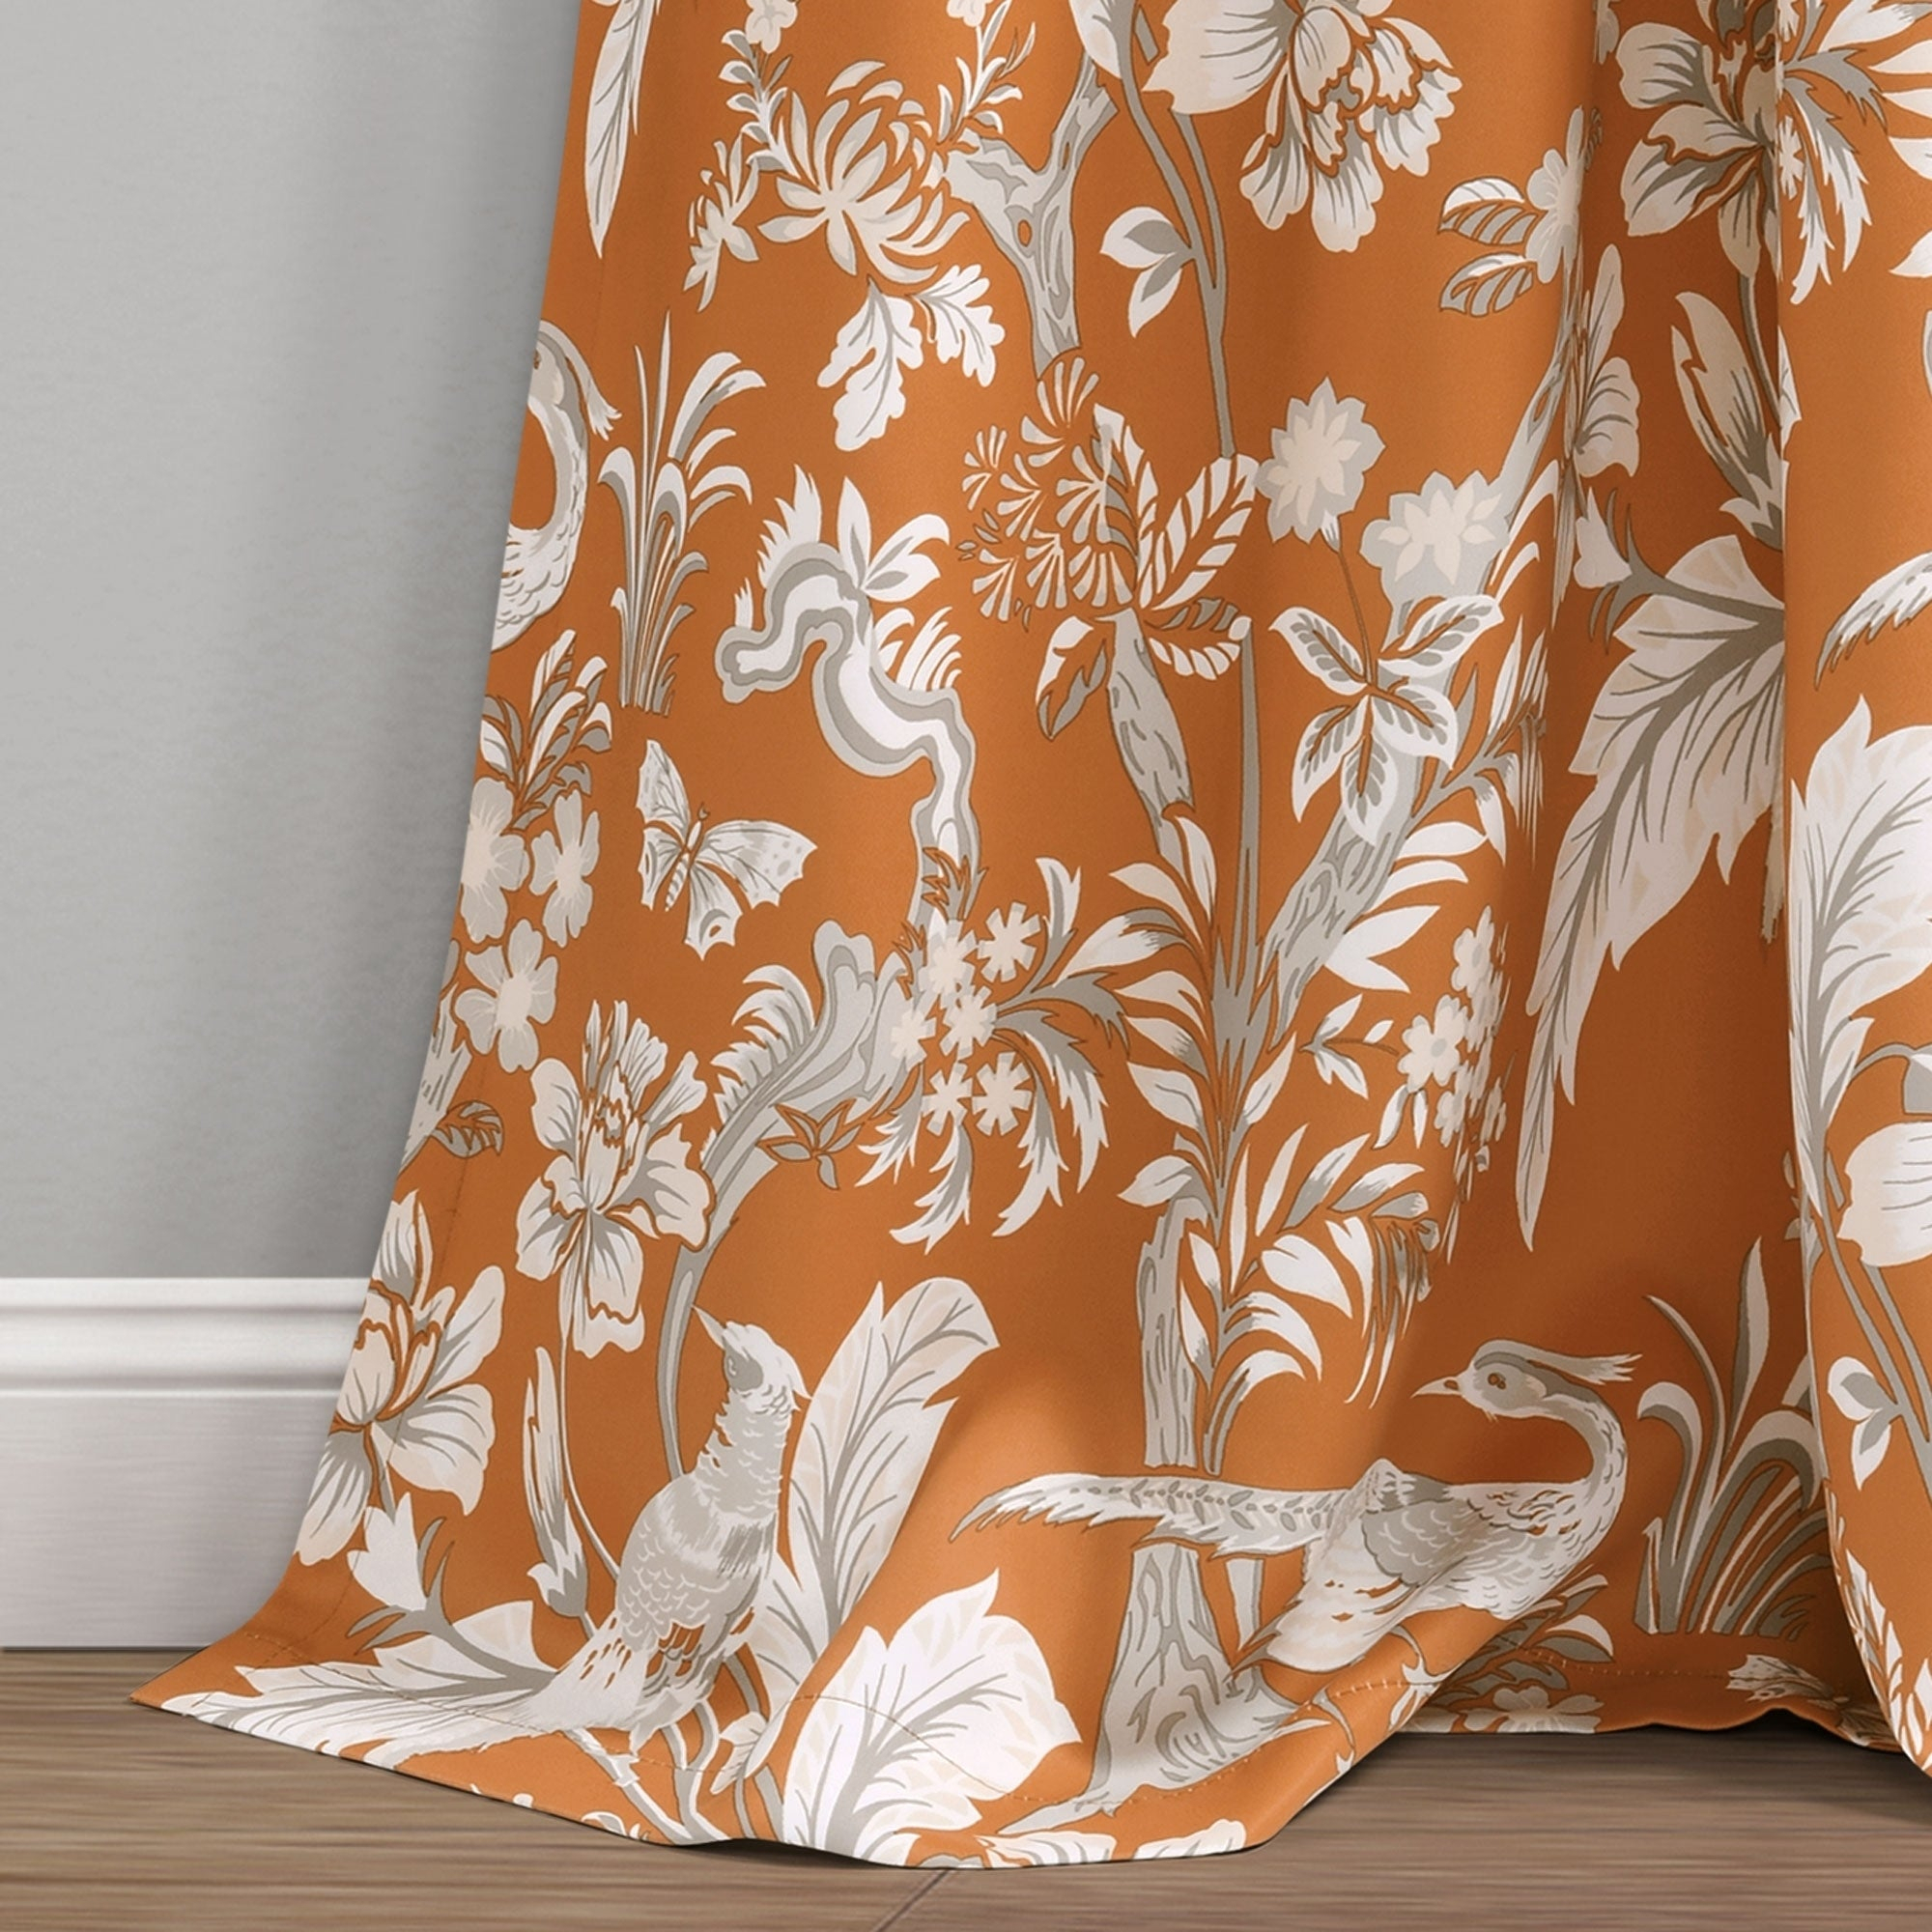 Lush Decor Dolores Room Darkening Floral Curtain Panel Pair For Dolores Room Darkening Floral Curtain Panel Pairs (View 6 of 20)